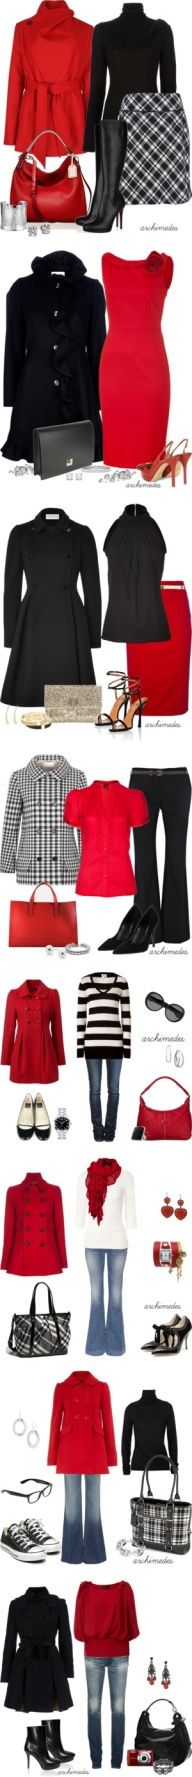 Red and White and Black by archimedes16  liked on Polyvore